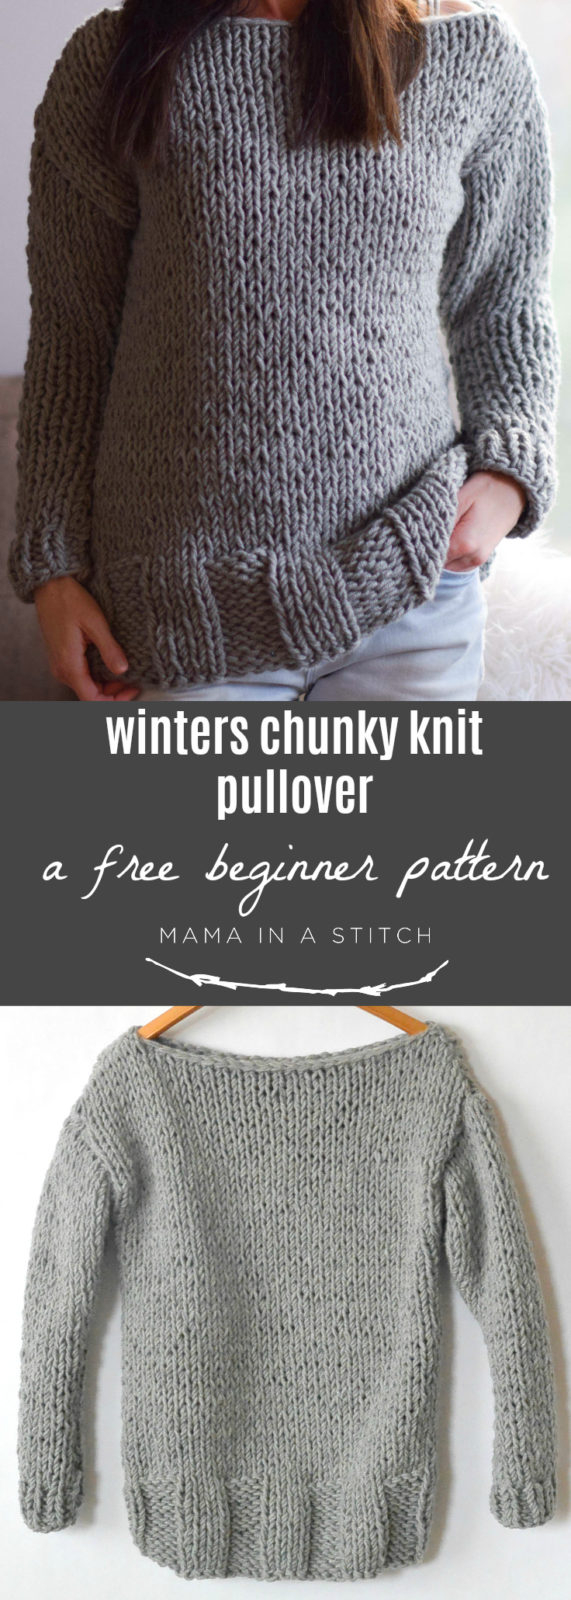 Free Sweater Patterns To Knit Winters Chunky Easy Knit Pullover Pattern Mama In A Stitch